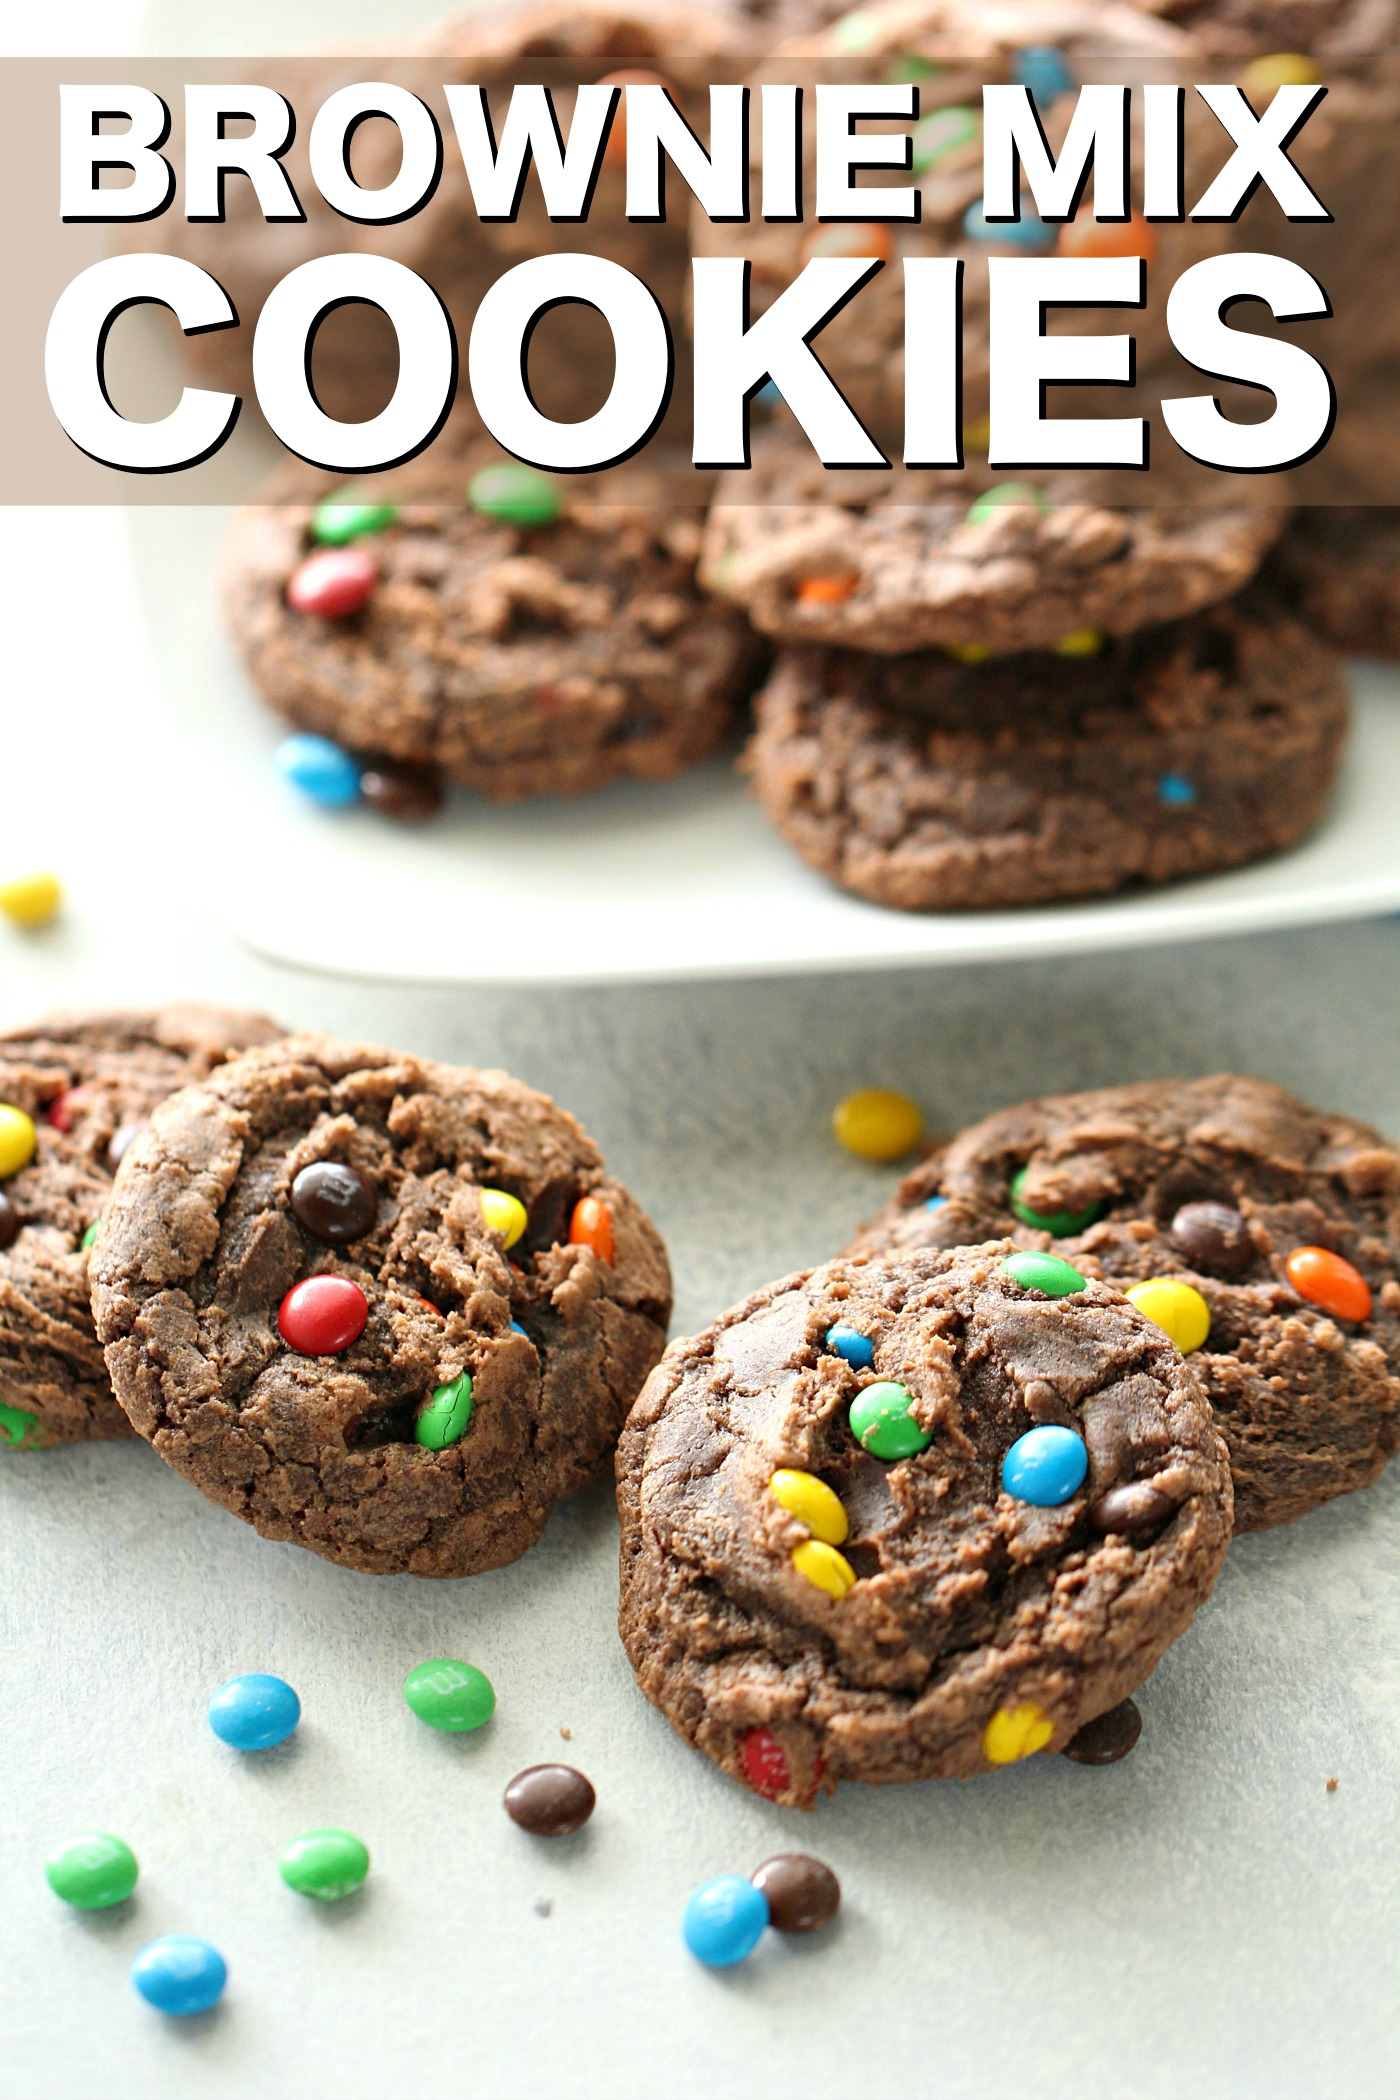 Brownie Mix Cookies on a counter top